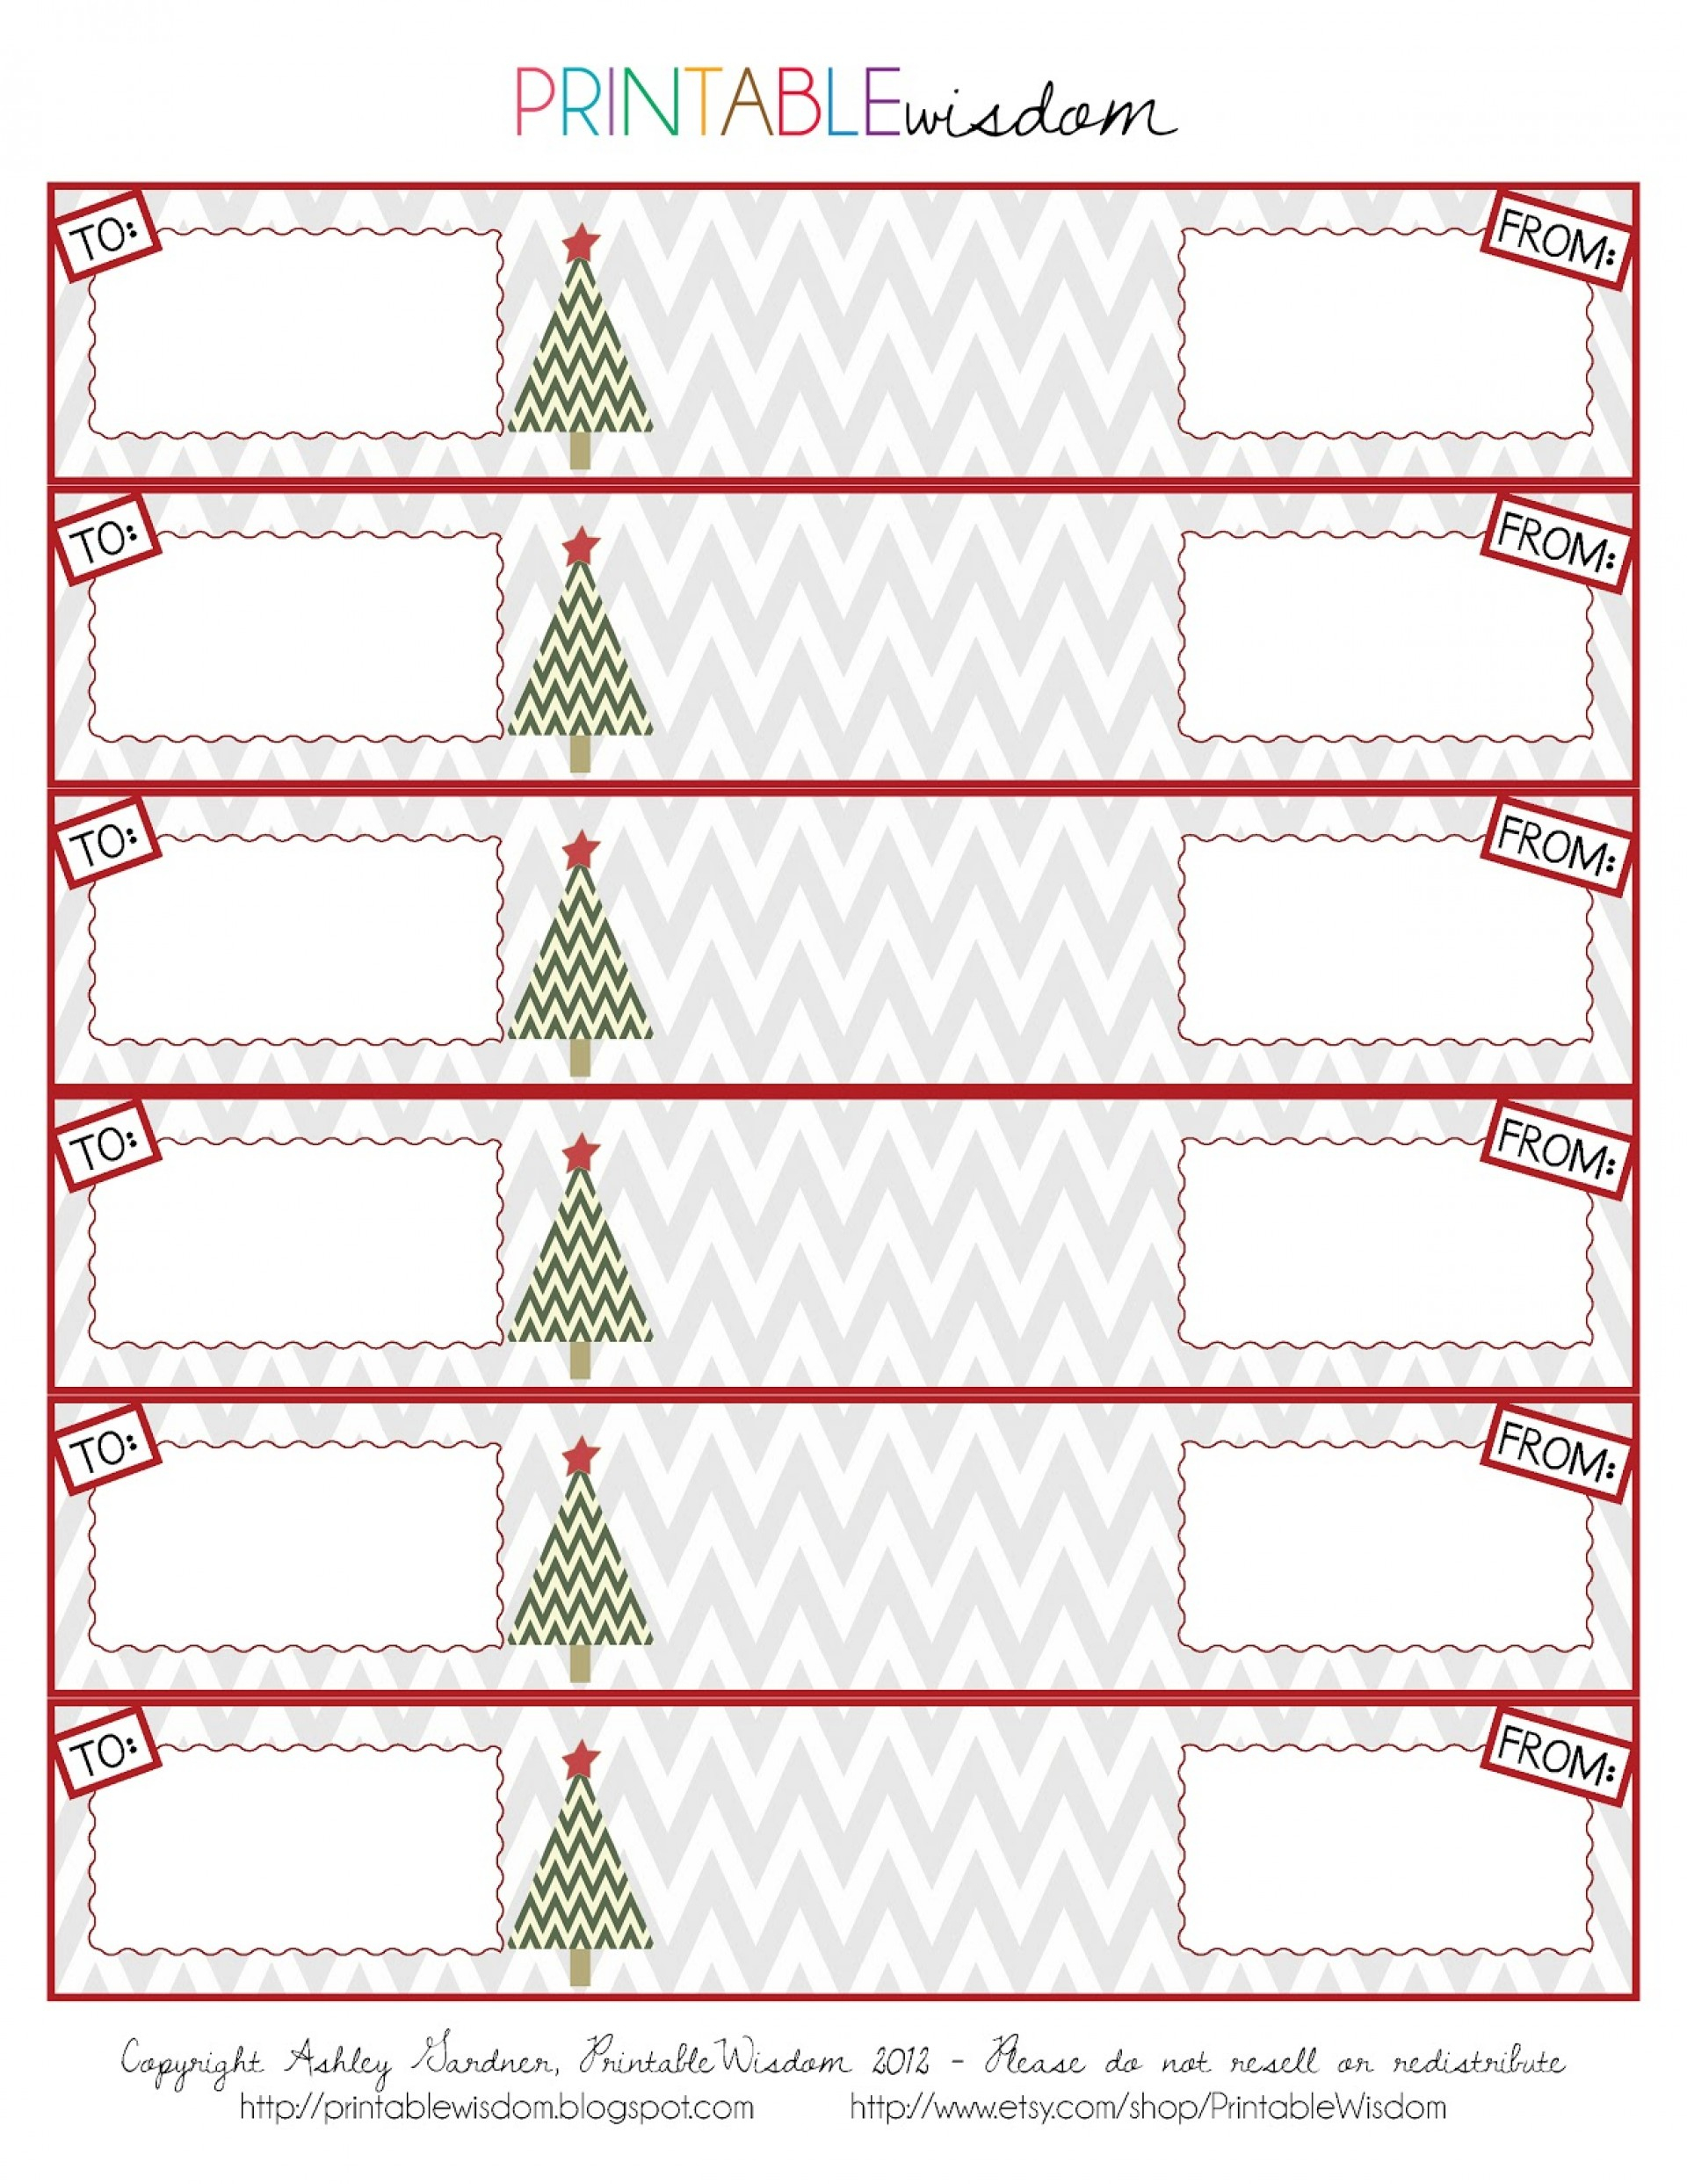 009 Address Labels Template Free Ideas Printable Christmas Happy - Free Printable Christmas Return Address Label Template